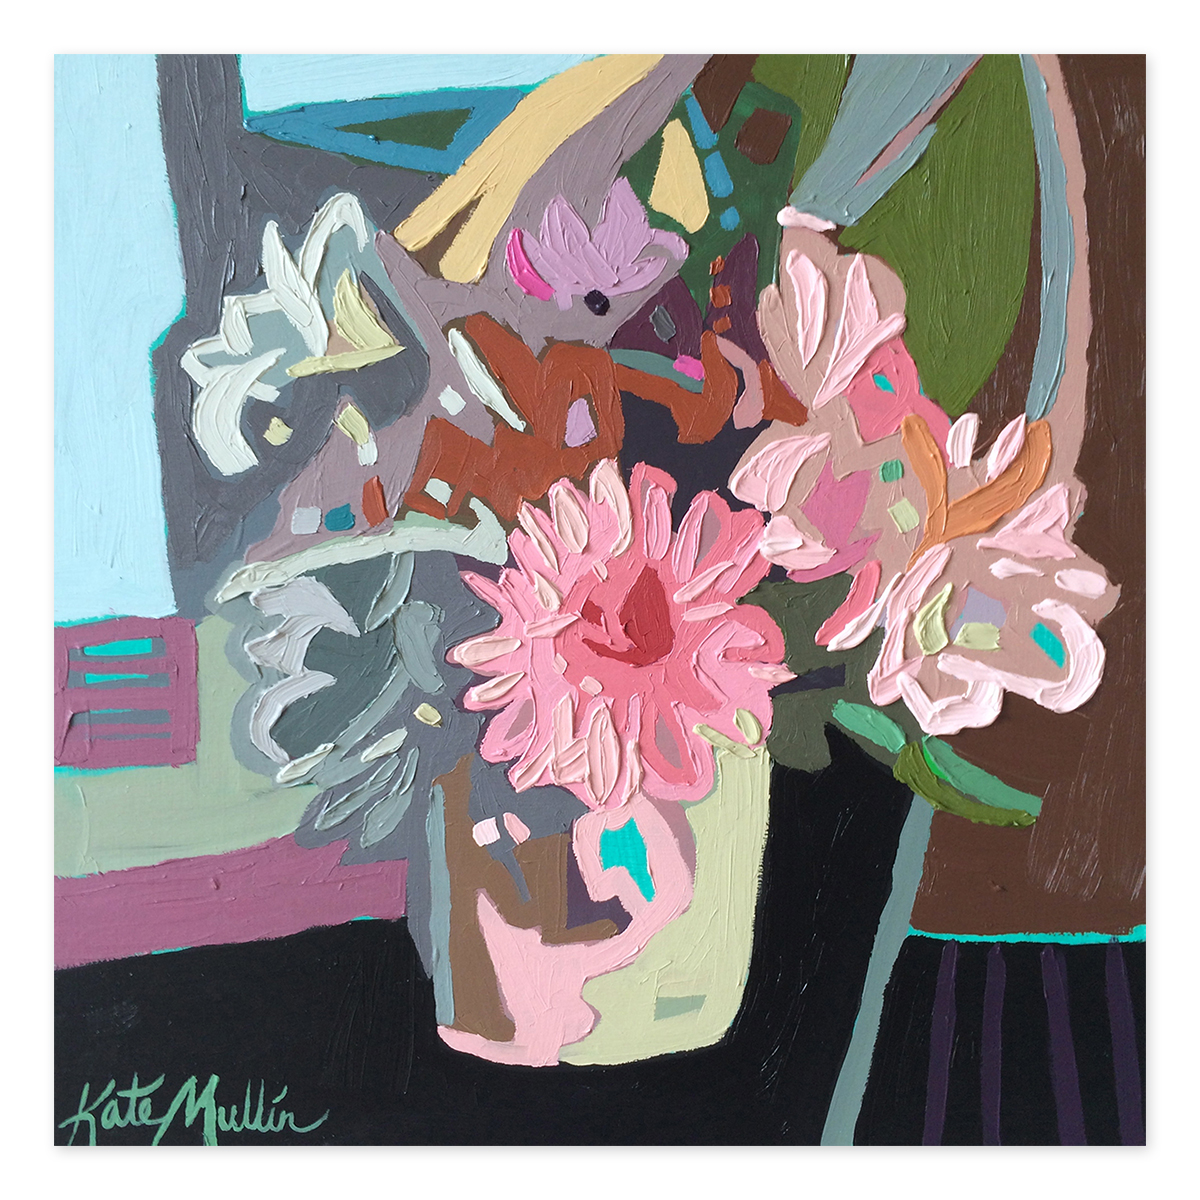 tomorrow: kate mullin's cows and colorful flowers